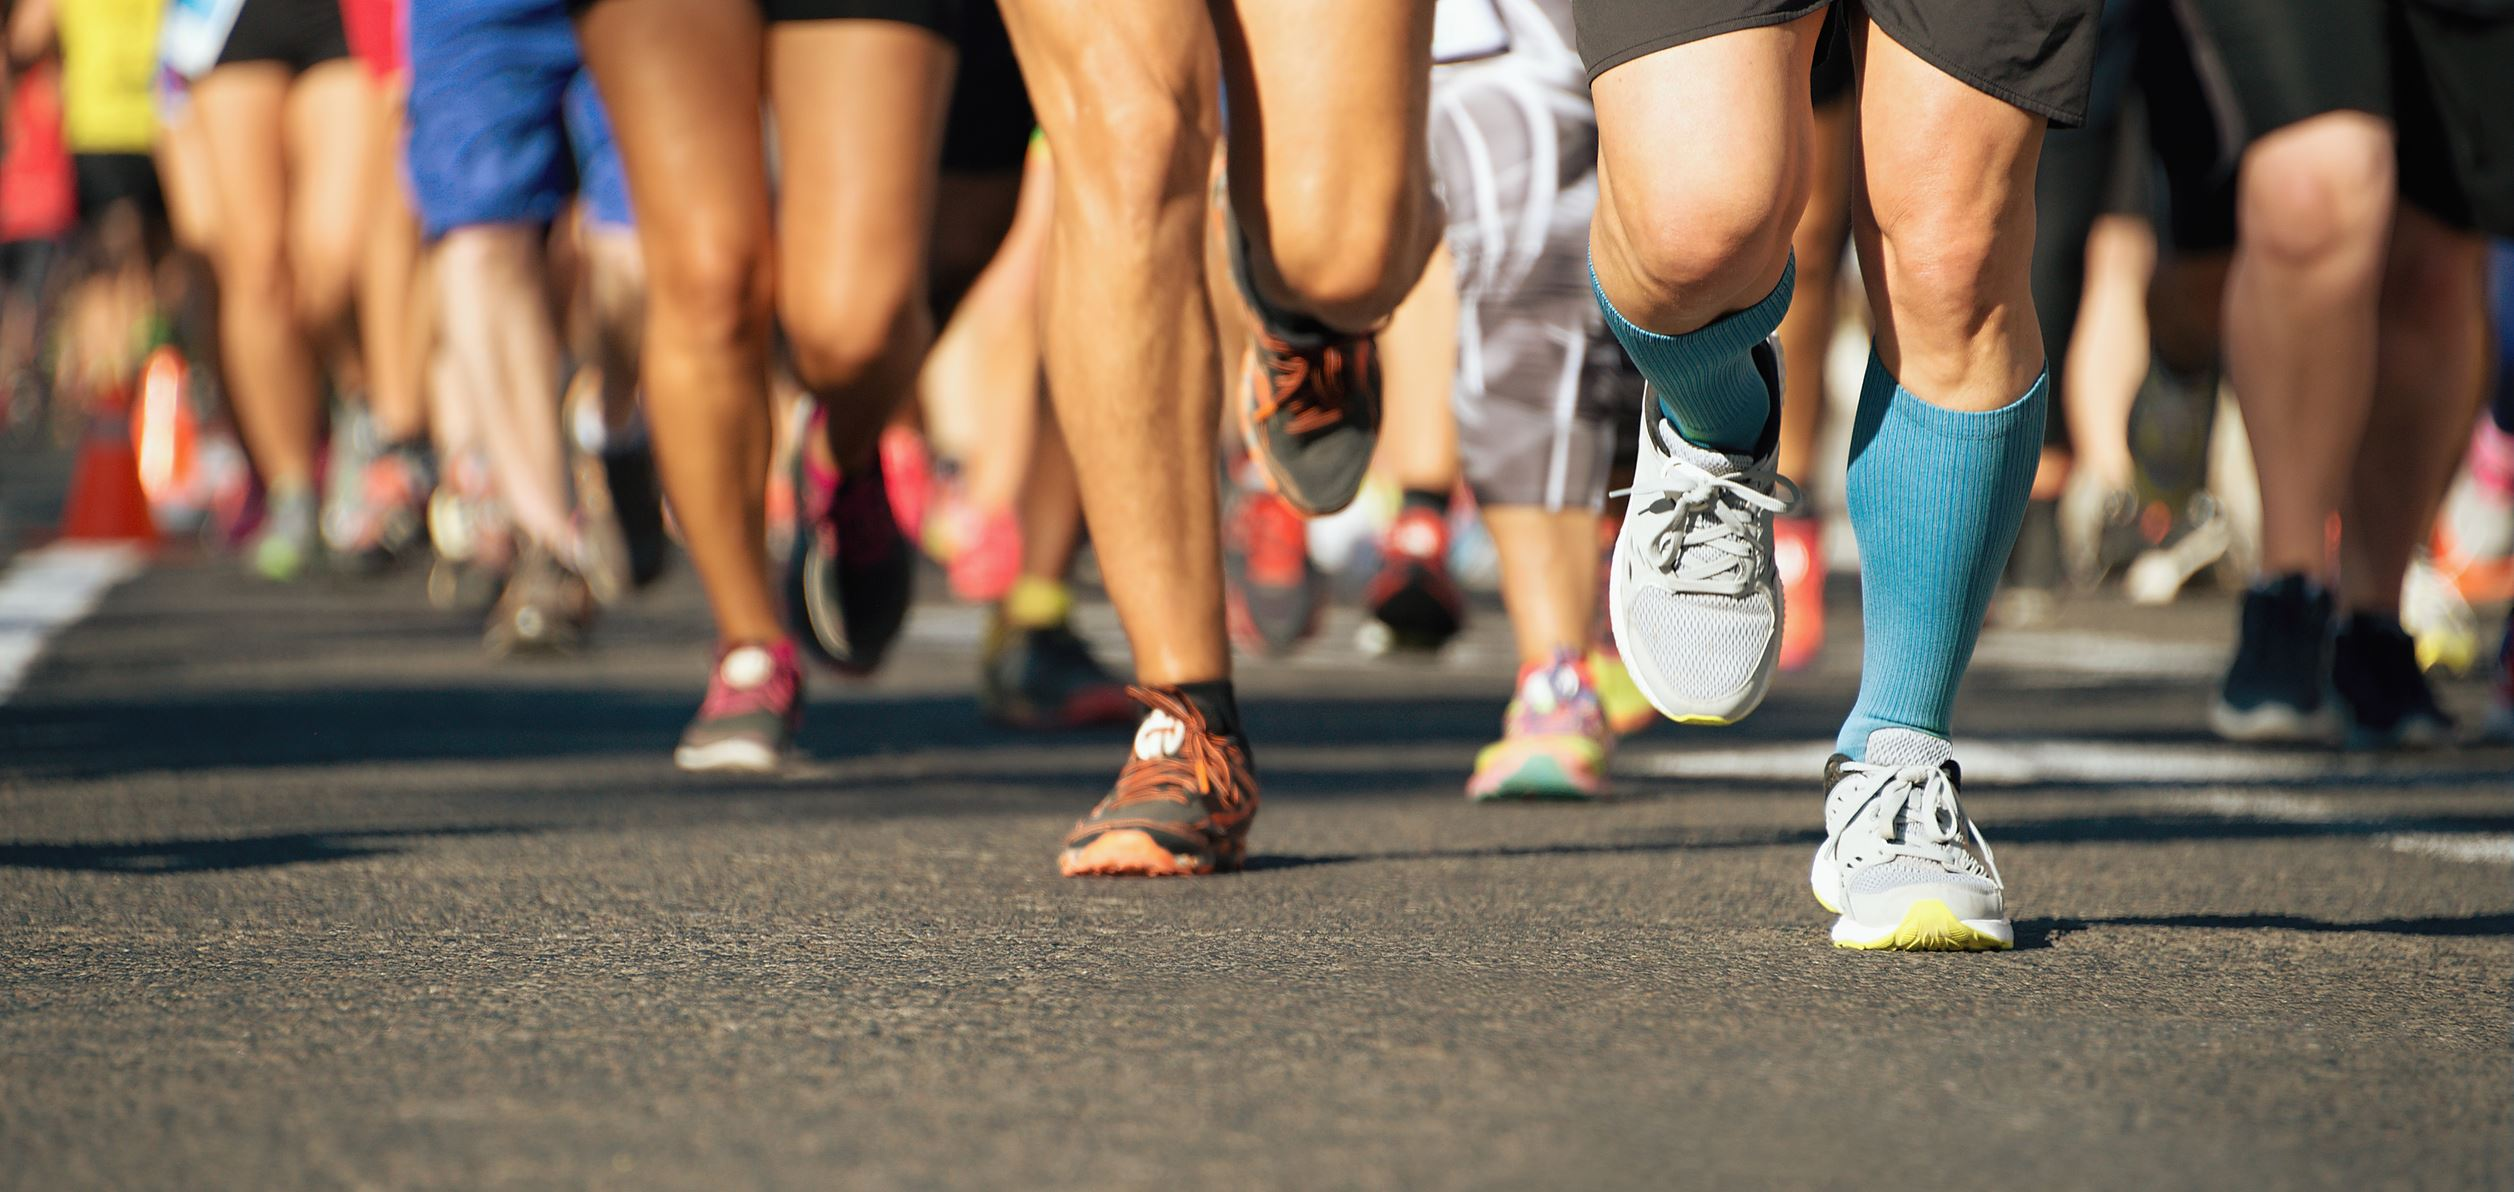 22-Year-Old Collapses and Dies During Cleveland Marathon